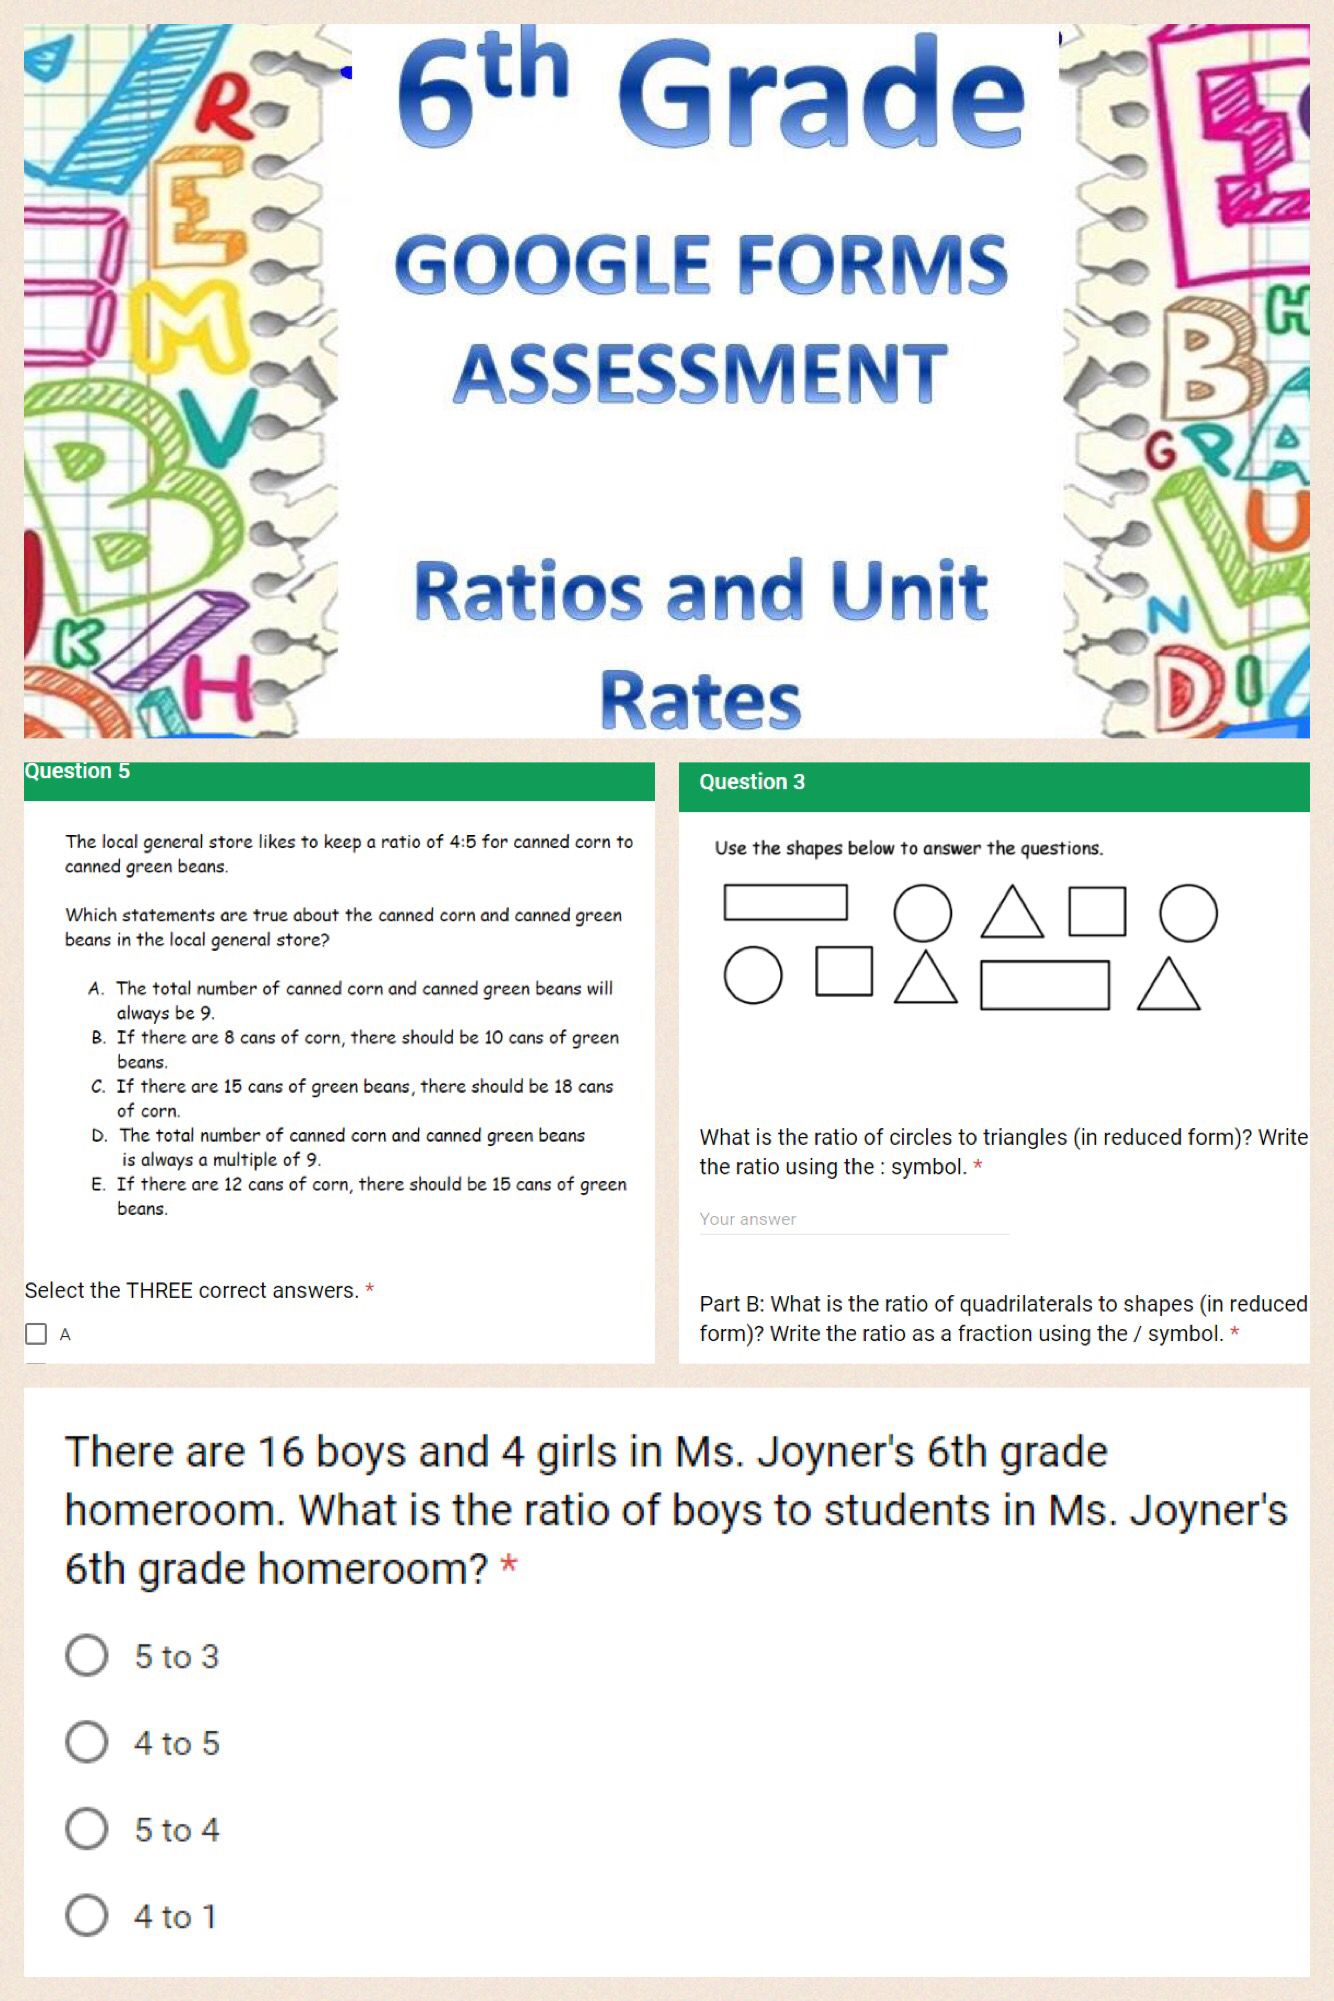 hight resolution of 6th Grade Ratios and Unit Rates Google Forms Assessment   Free math  worksheets